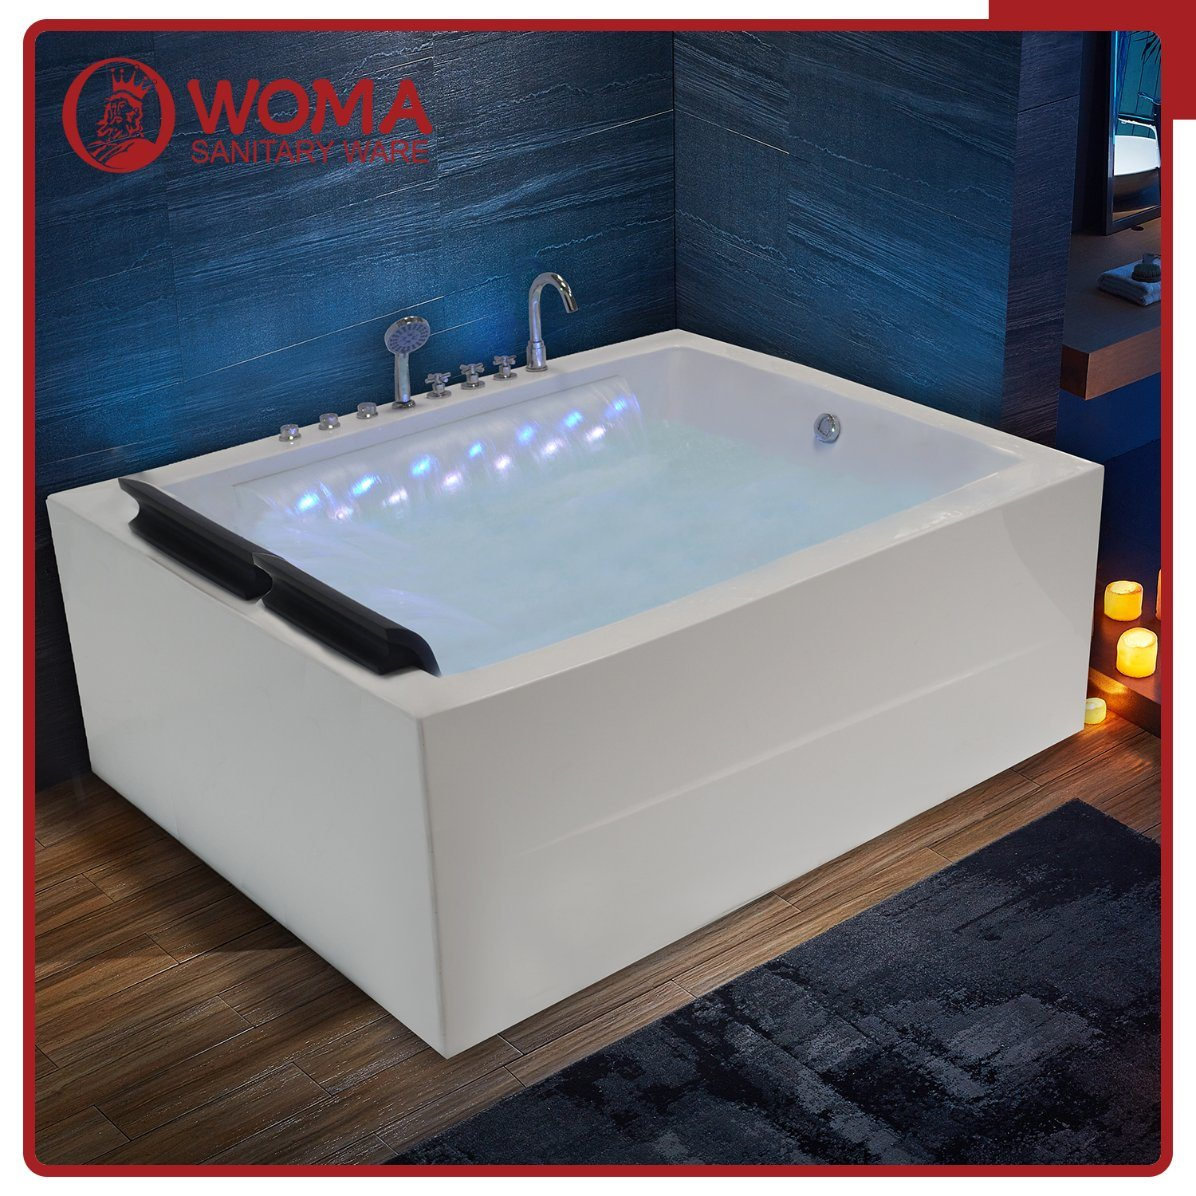 China Jacuzzi Whirlpool Tub, Jacuzzi Whirlpool Tub Manufacturers ...